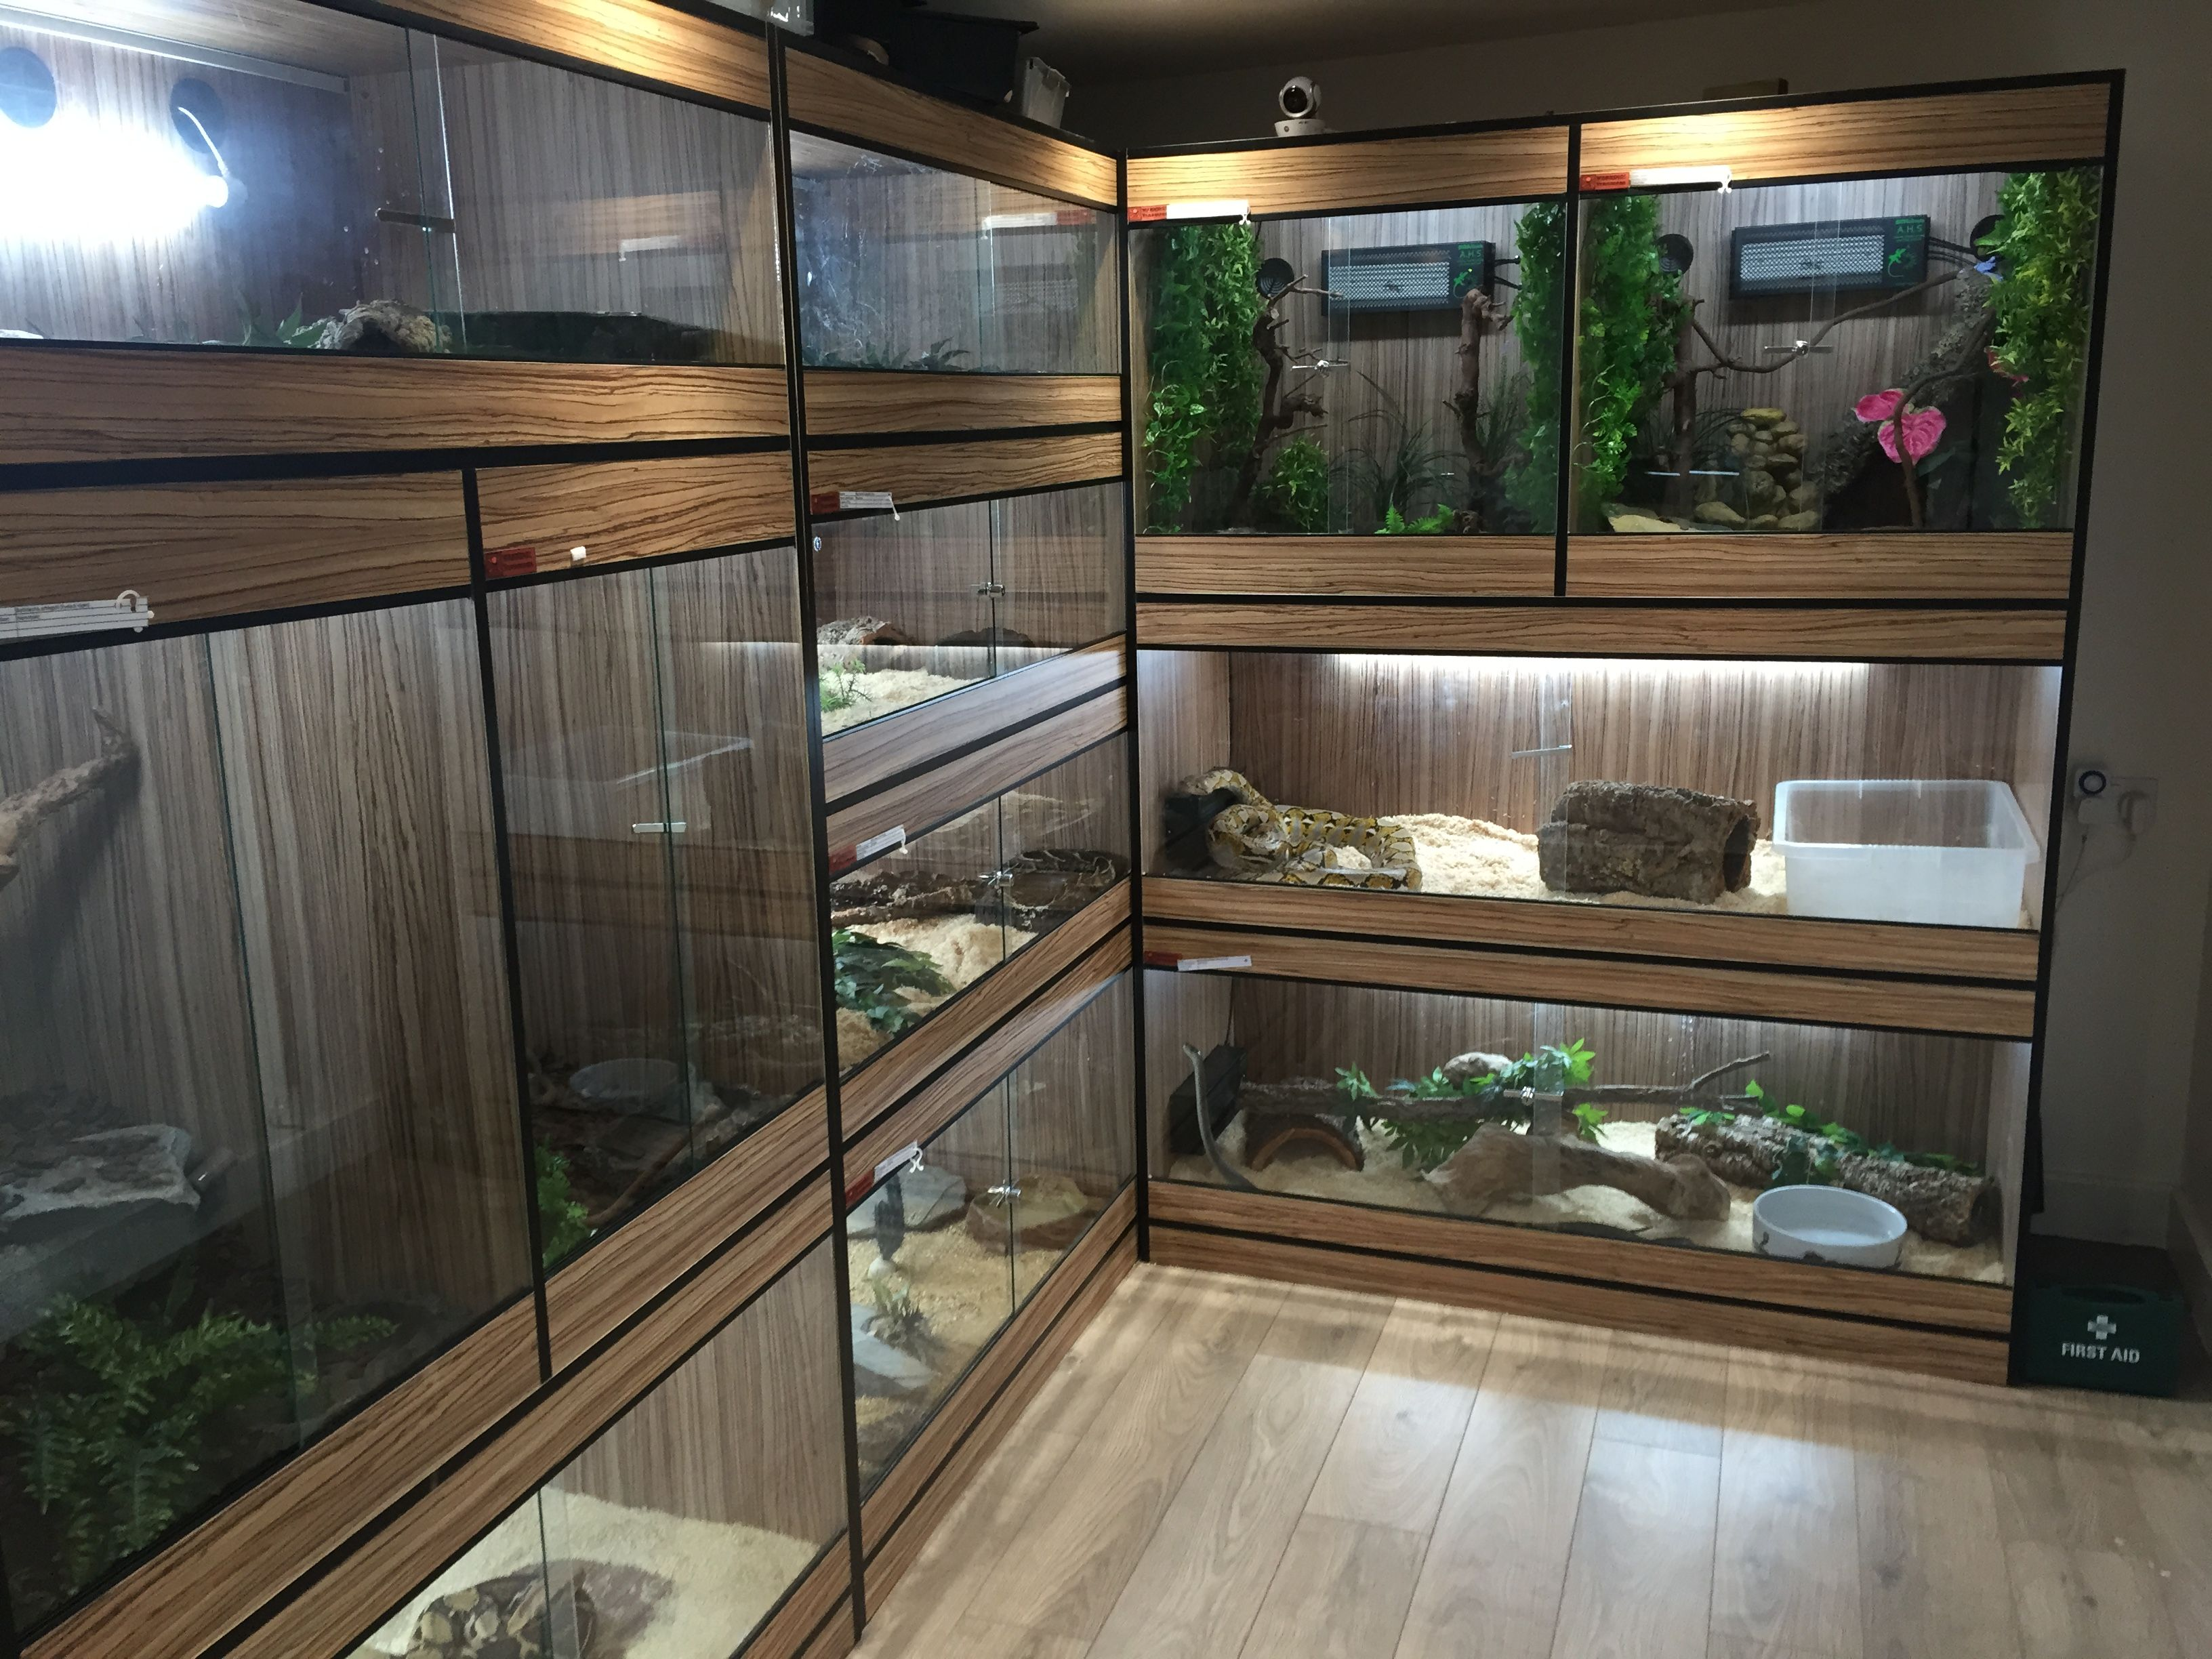 Animalroom herp room with fridge  | Reptiles and stuff